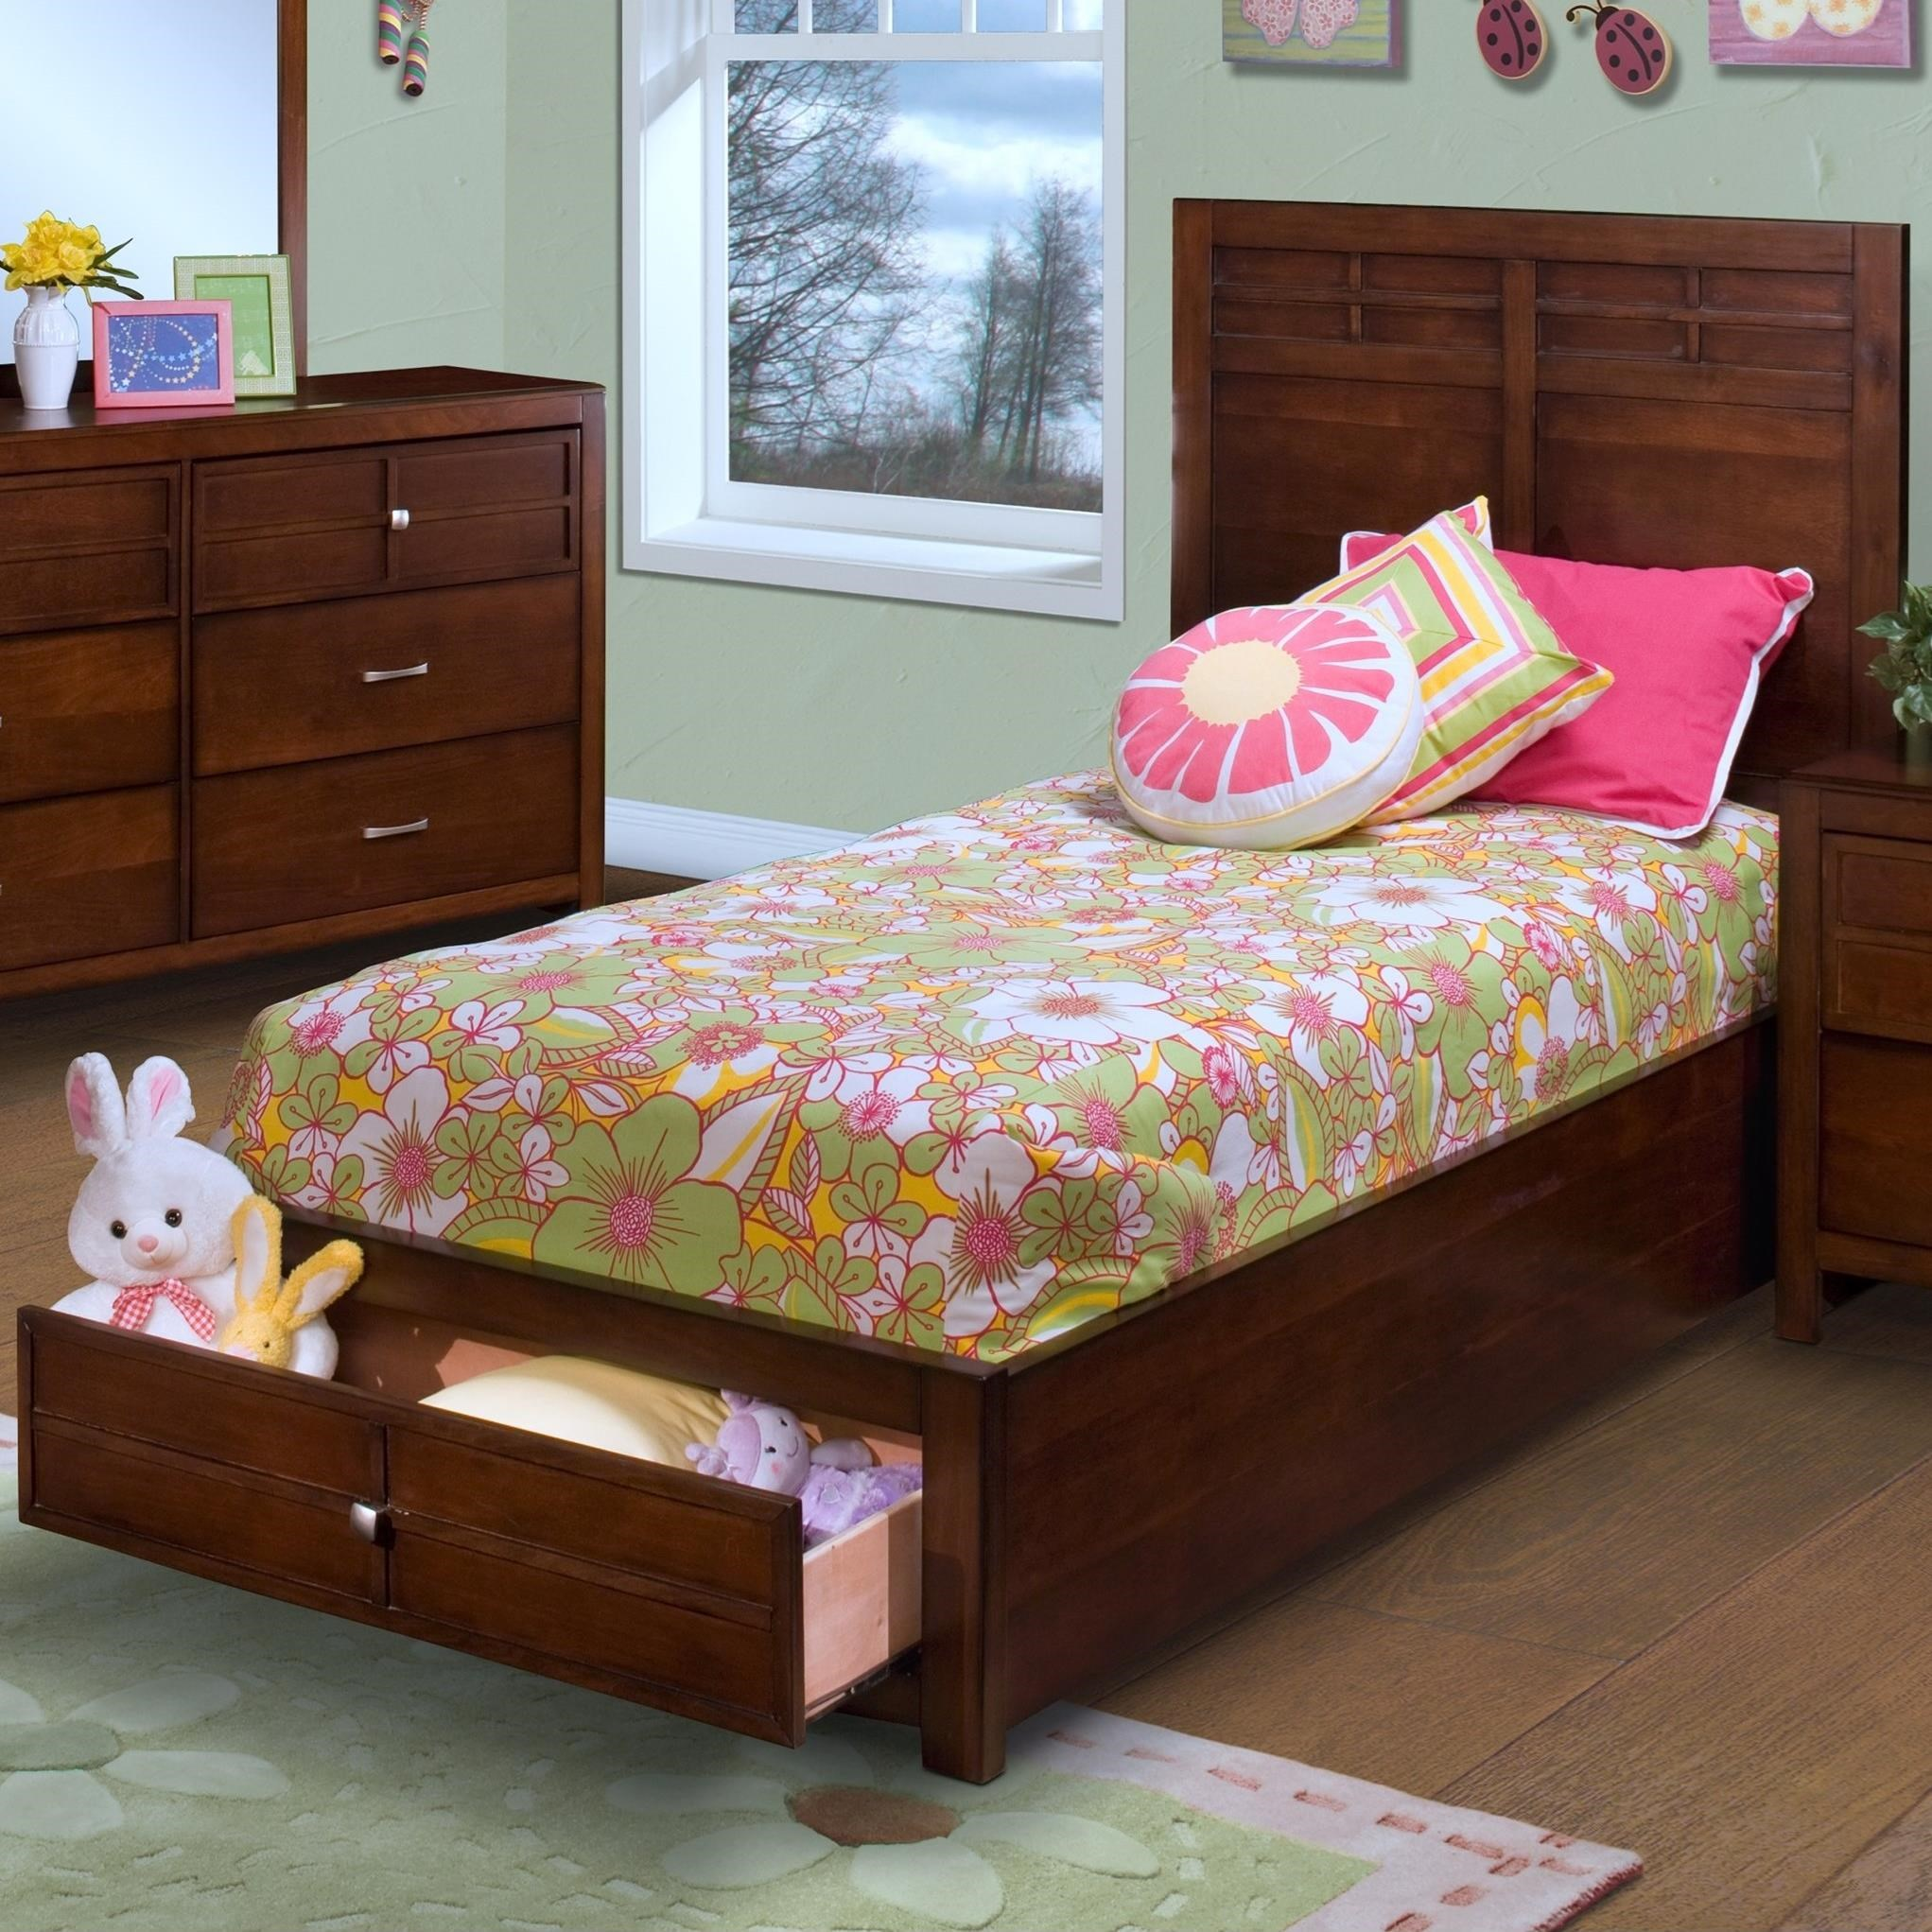 Cheap New Beds: New Classic Kensington Twin Low-Profile Bed With Storage